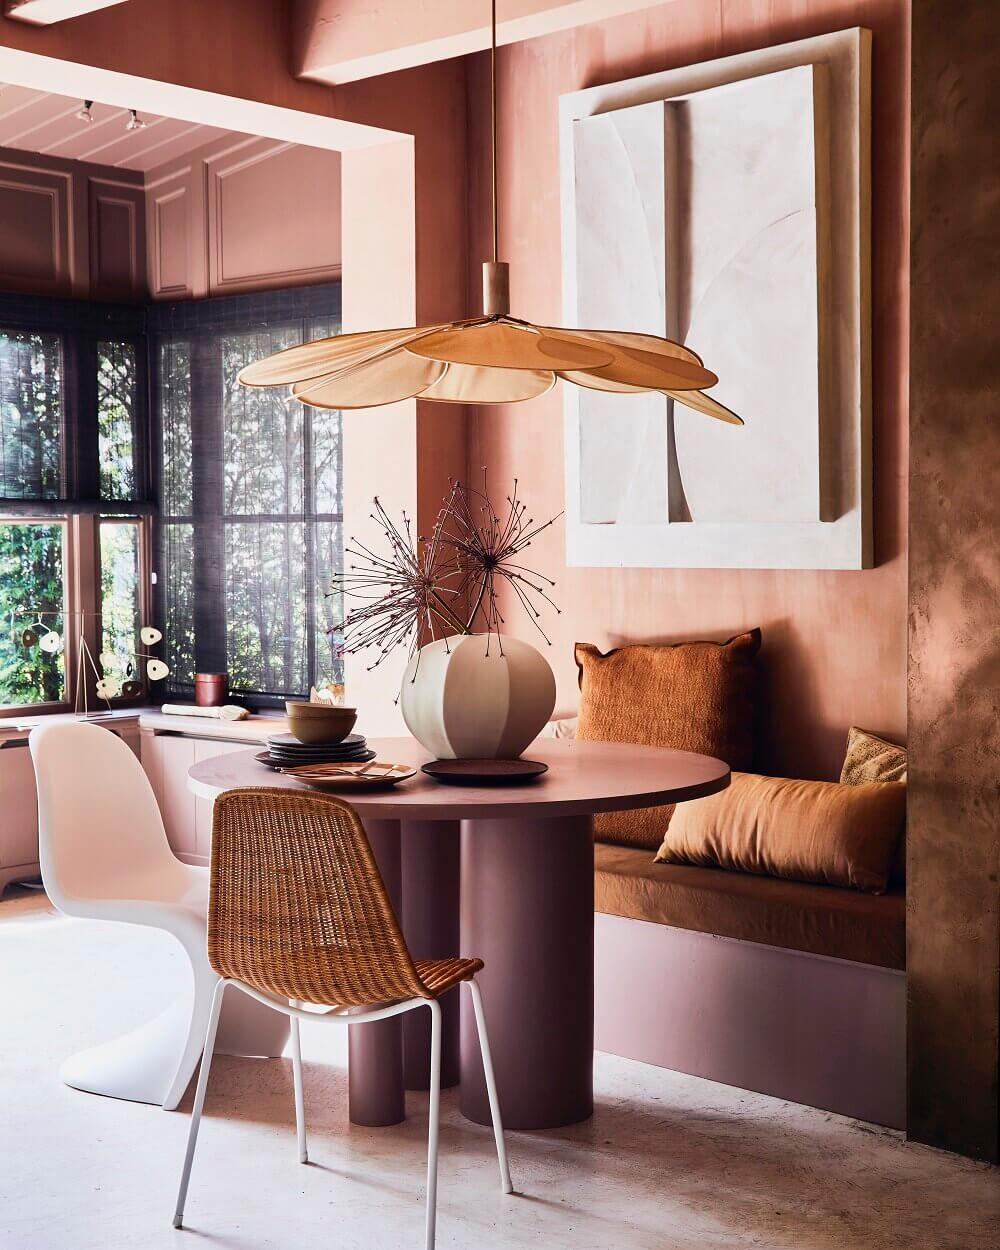 Warm Earthy Hues and Cozy Corners For A Moroccan-Style Home